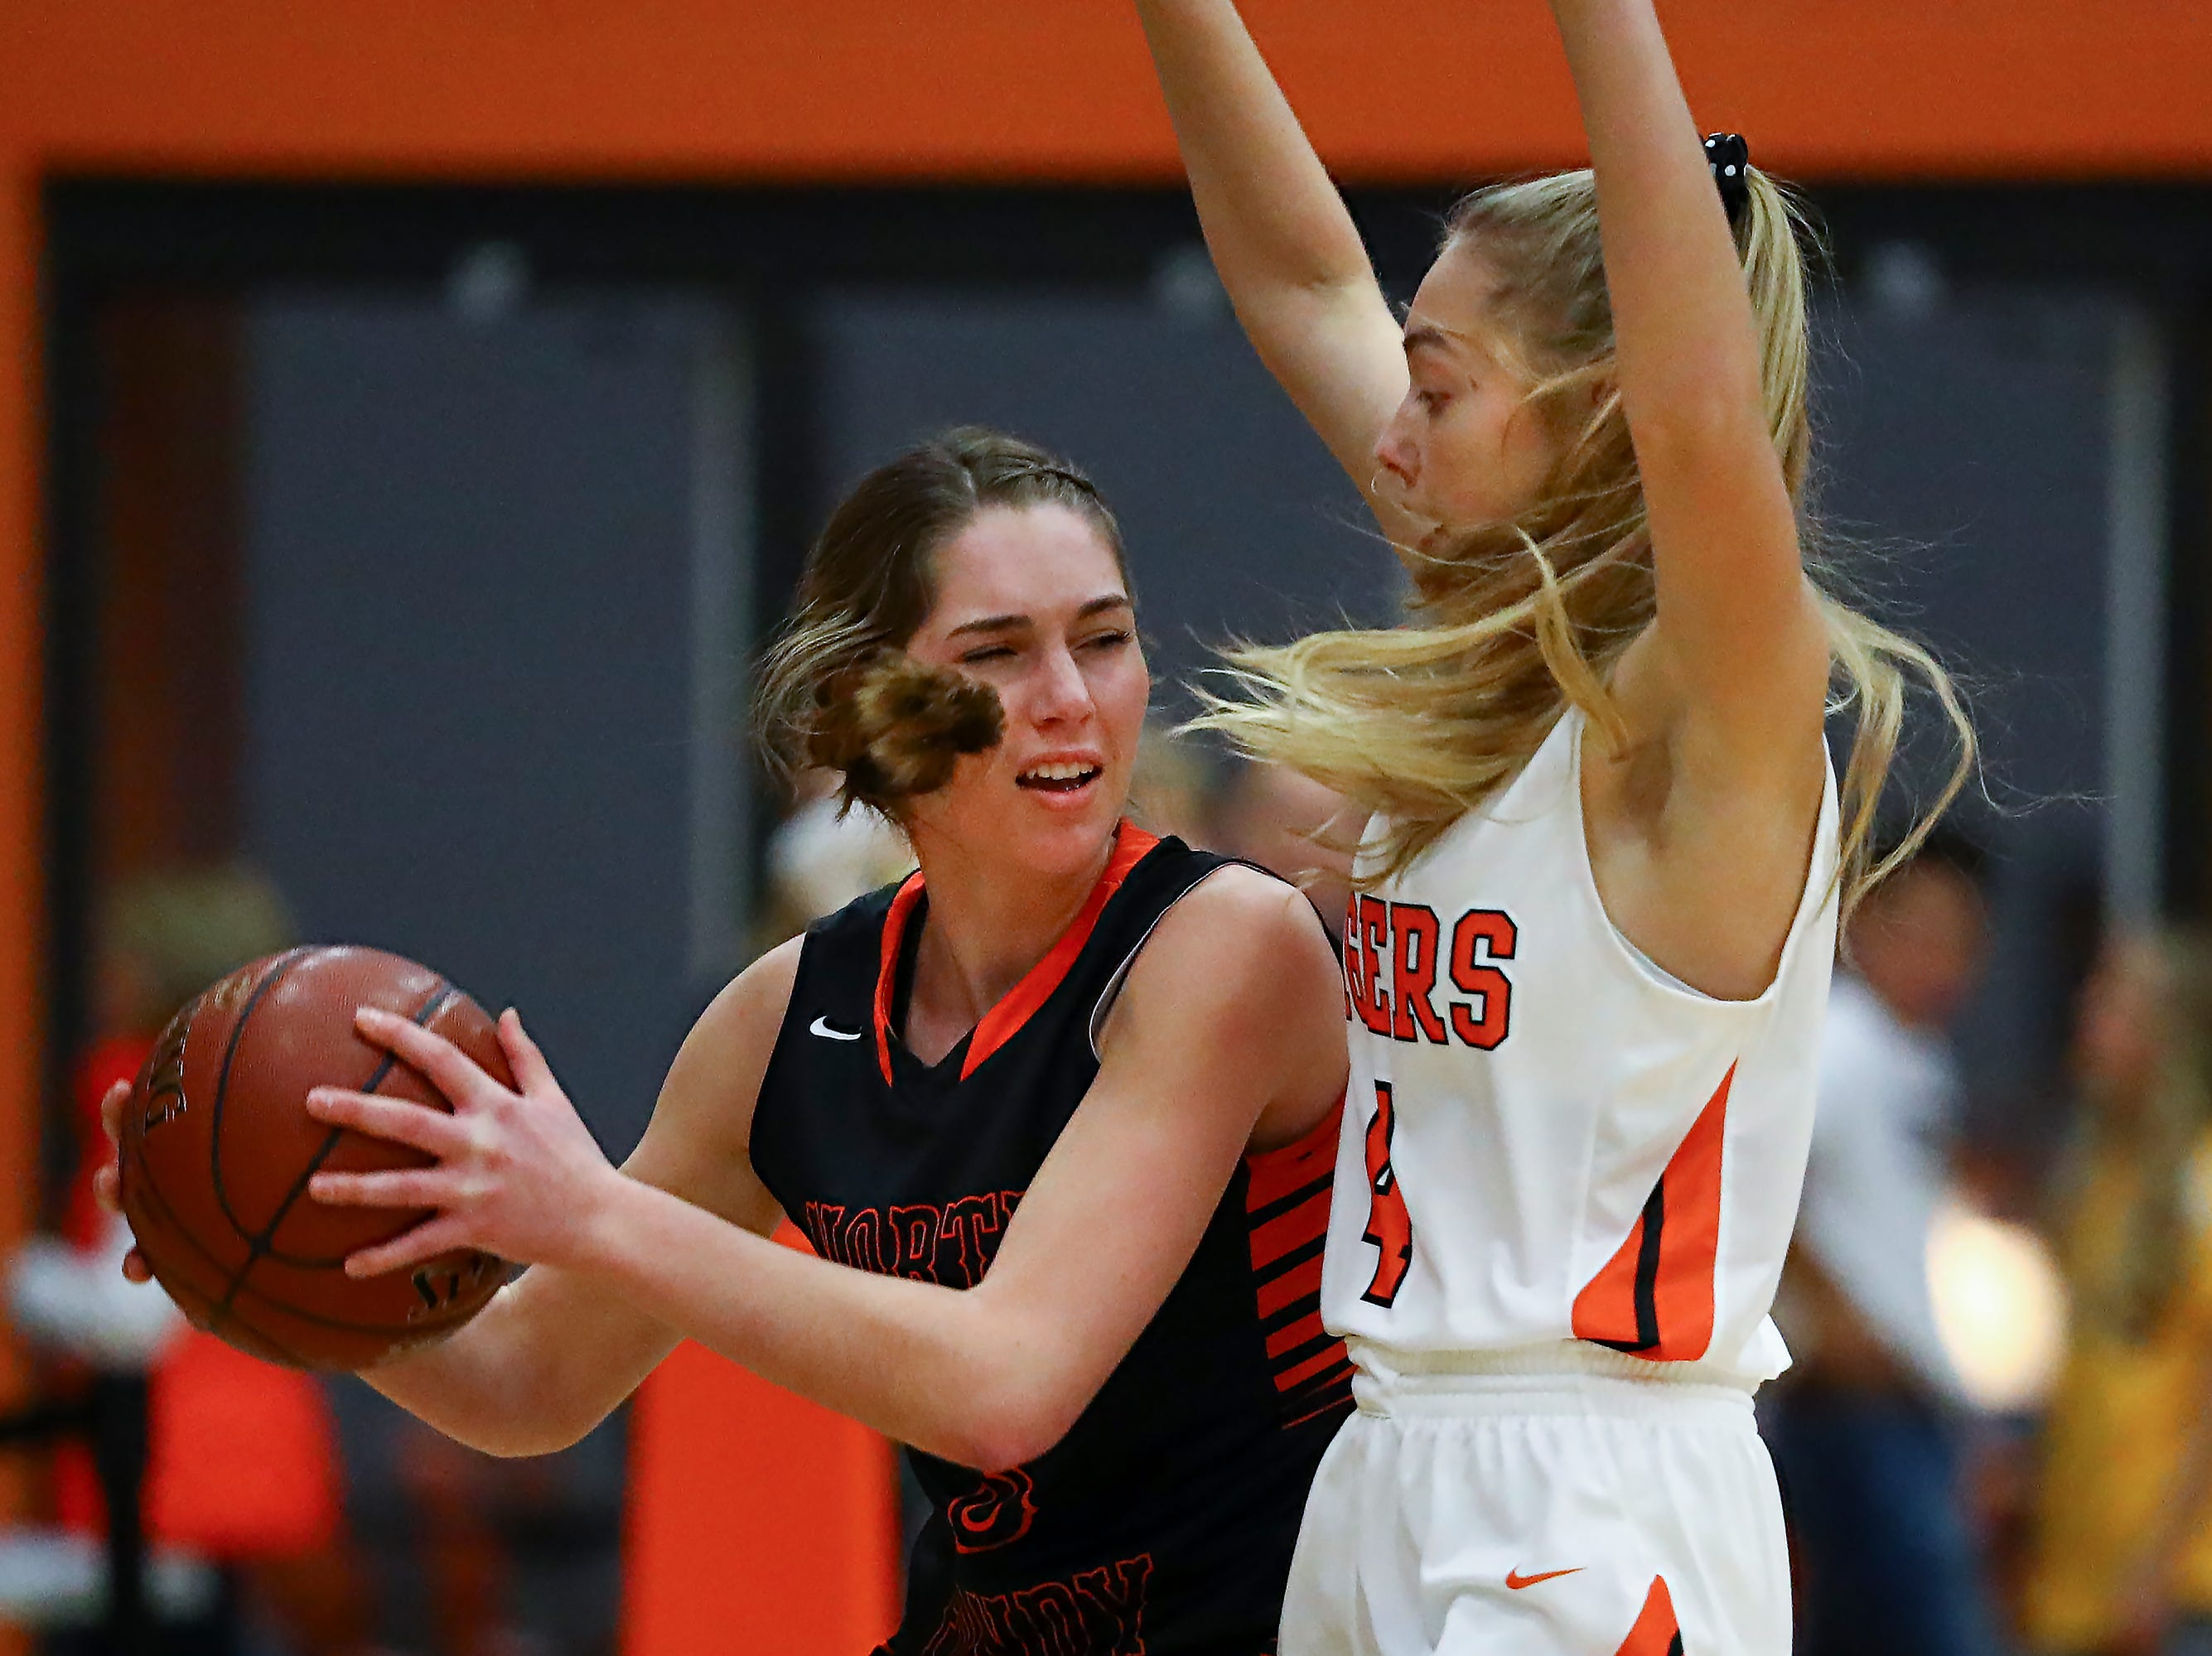 Rebecca Kingsland (3) of North Fond du Lac and Elle Lewis (4) of Ripon battle for the ball. The Ripon Tigers hosted the North Fond du Lac Orioles in a non-conference basketball game Thursday evening, November 15, 2018.